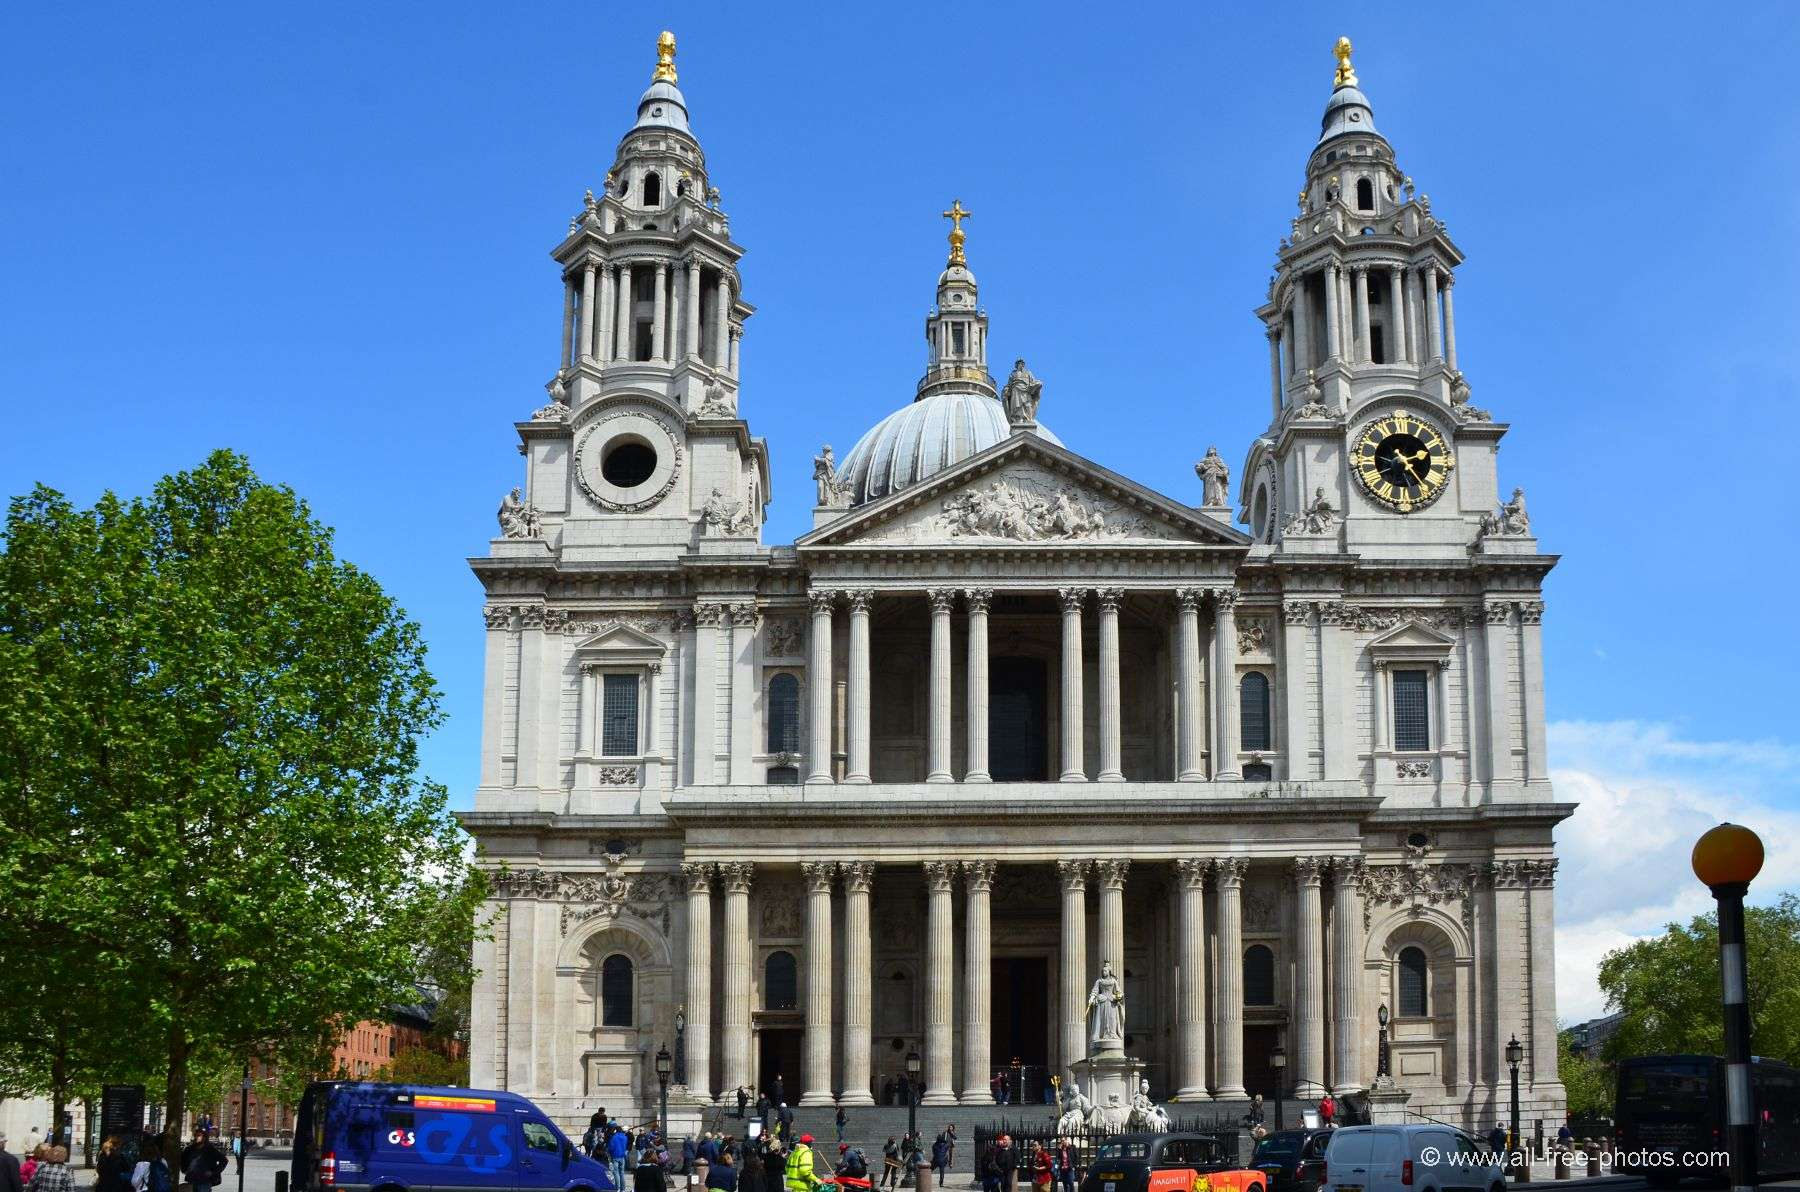 Saint Paul's cathedral - London - United Kingdom